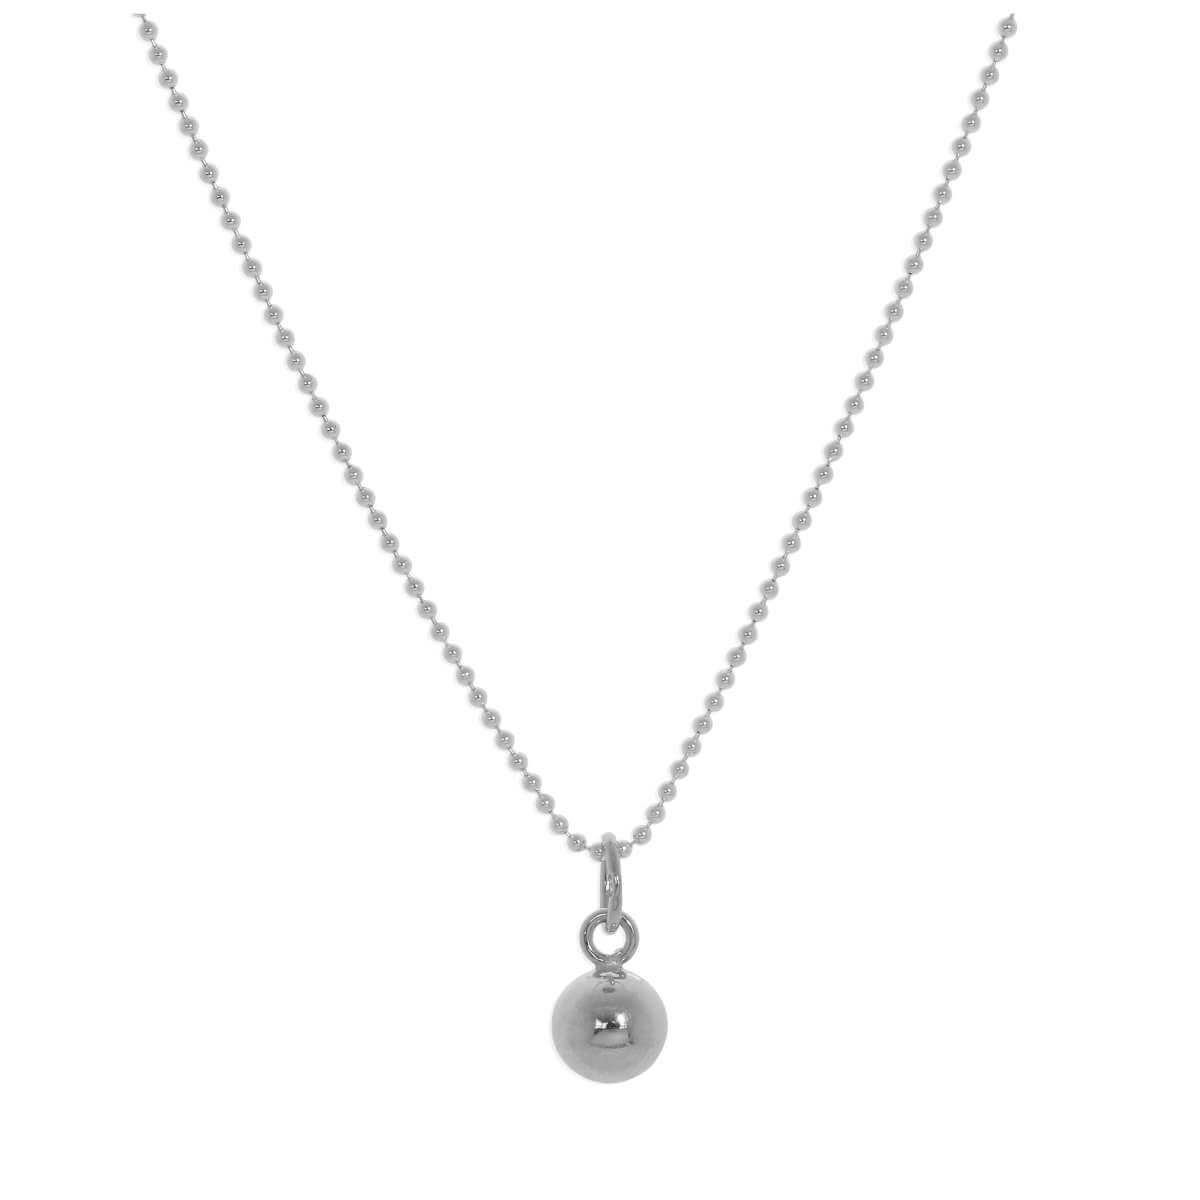 Sterling Silver Christmas Bauble Necklace - 14 - 22 Inches